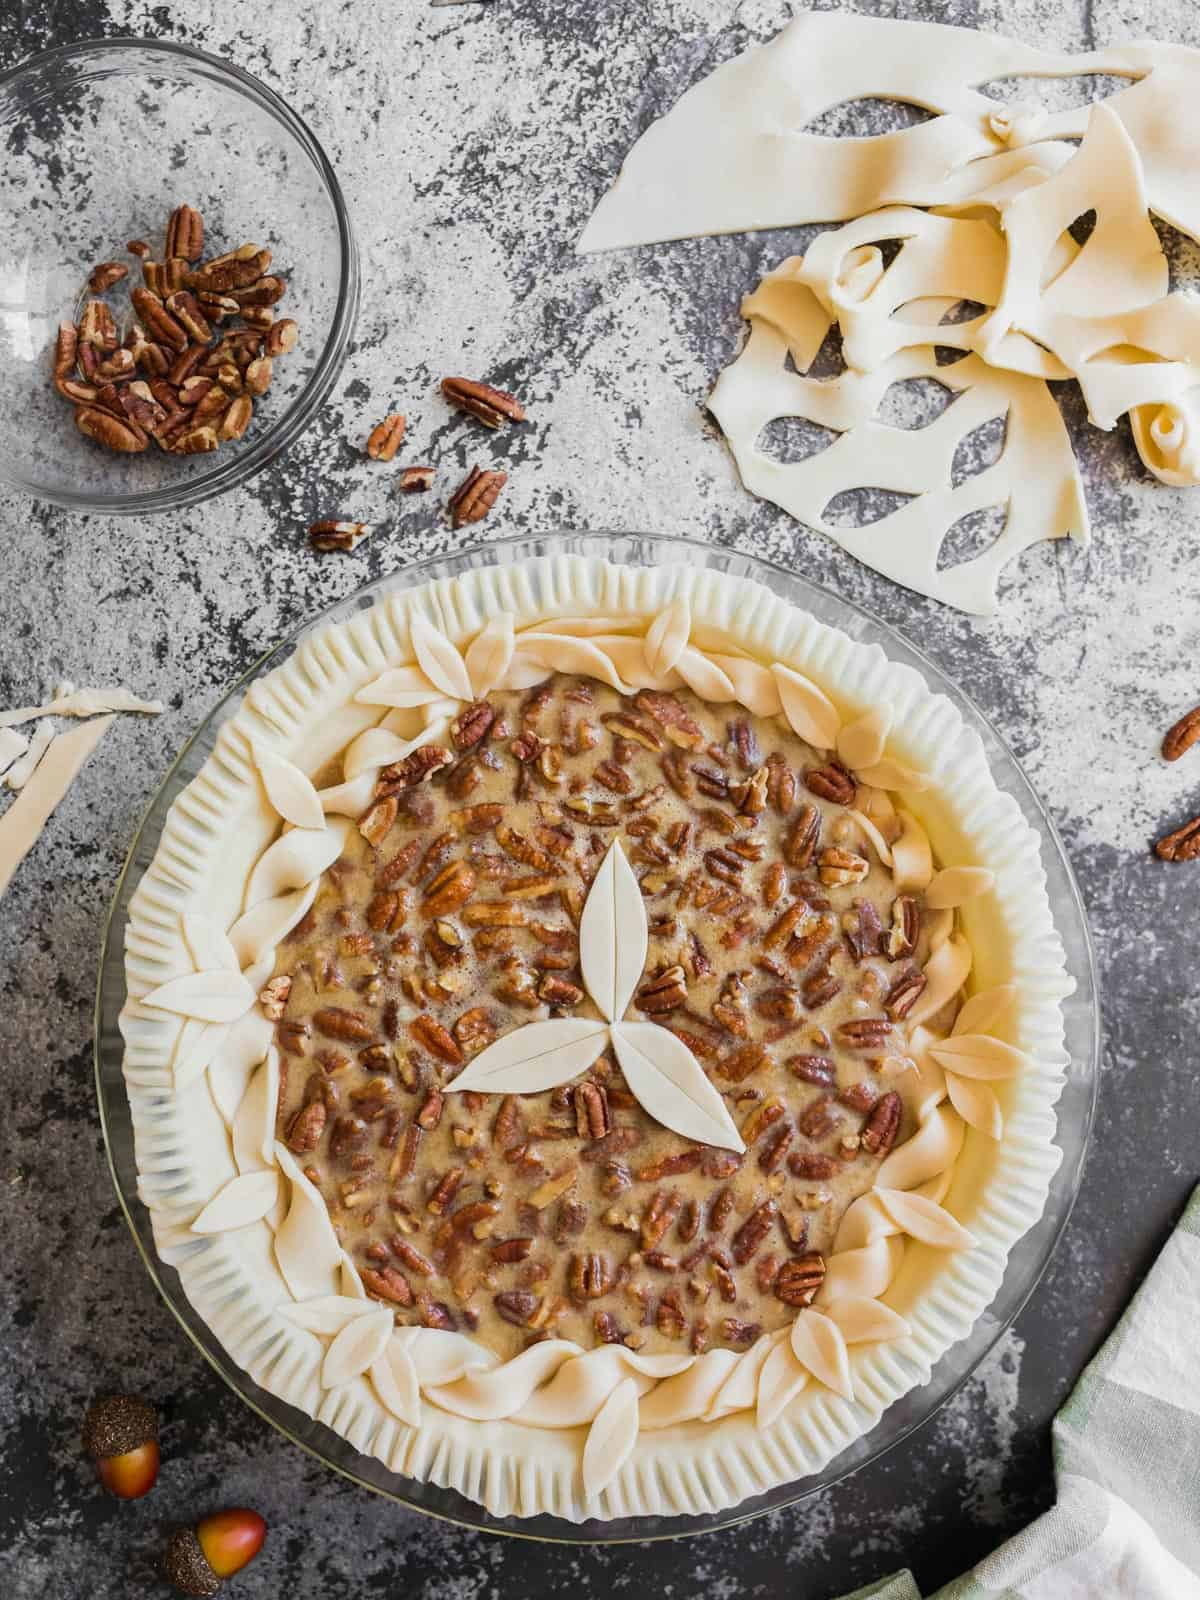 Decorating a homemade pecan pie